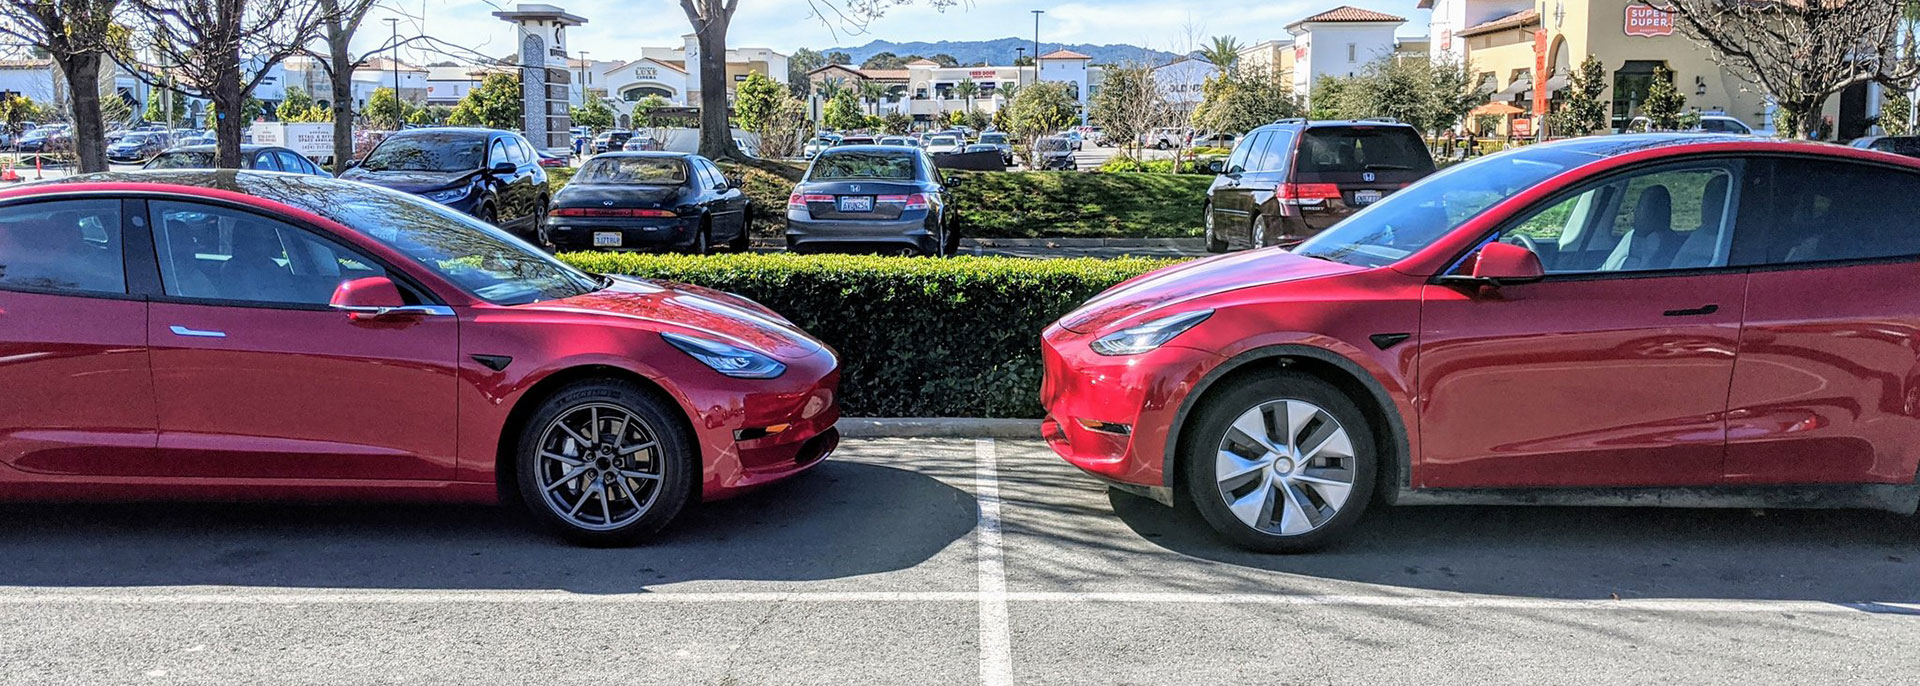 Tesla Model 3 and Tesla Model Y head to head, showing us the size difference from the side view profile.